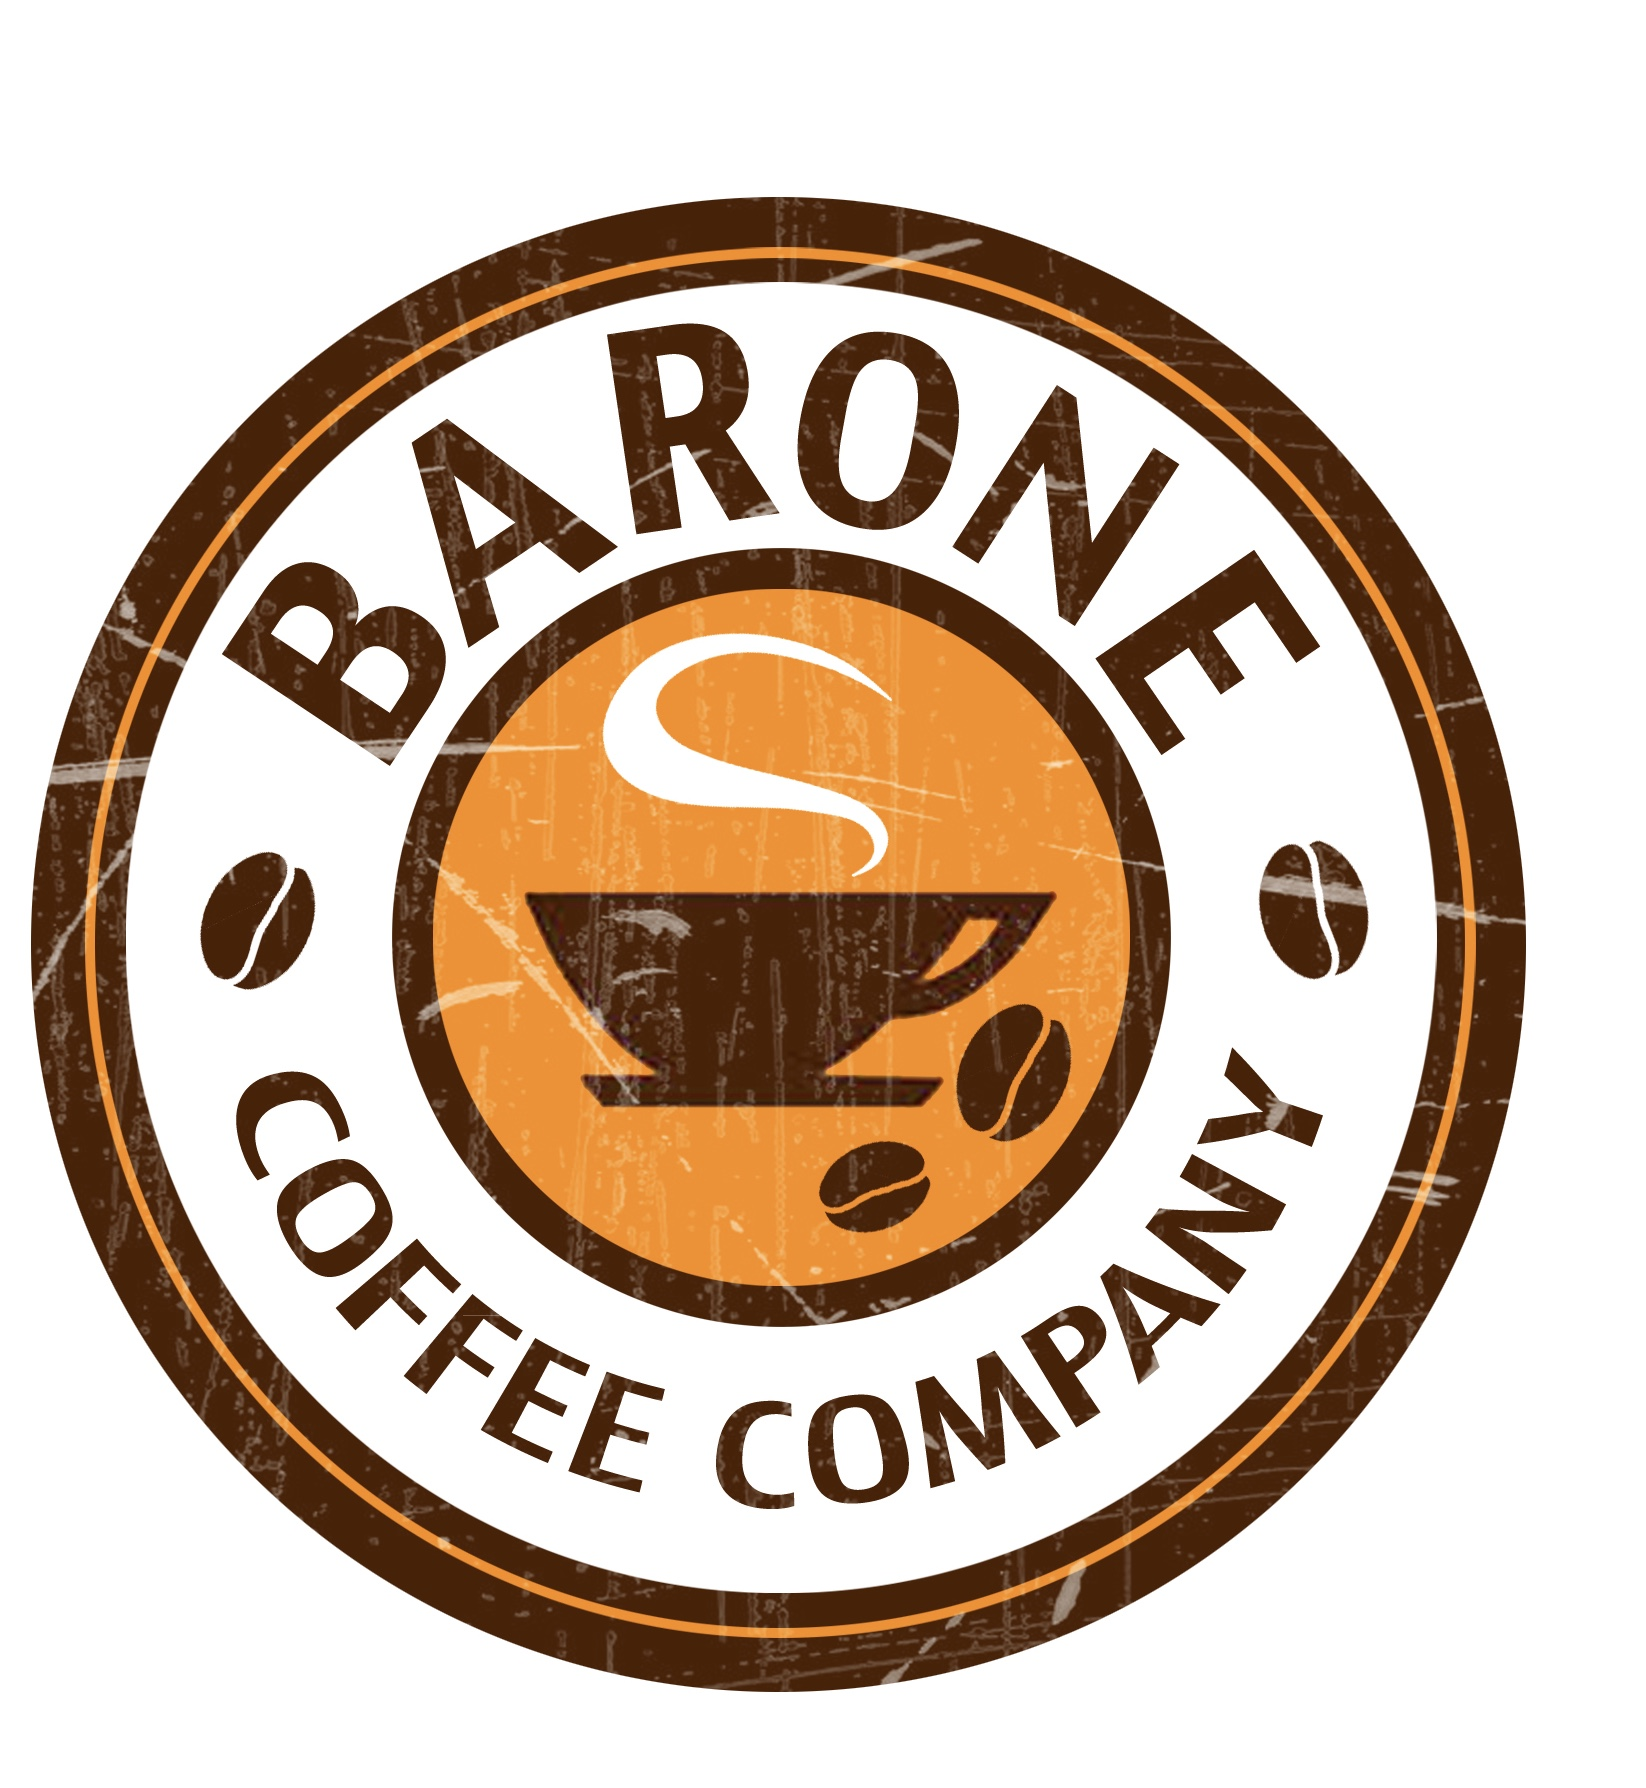 Barone Cofee Co. - East Grinstead, West Sussex RH19 4BS - 01342 328647 | ShowMeLocal.com